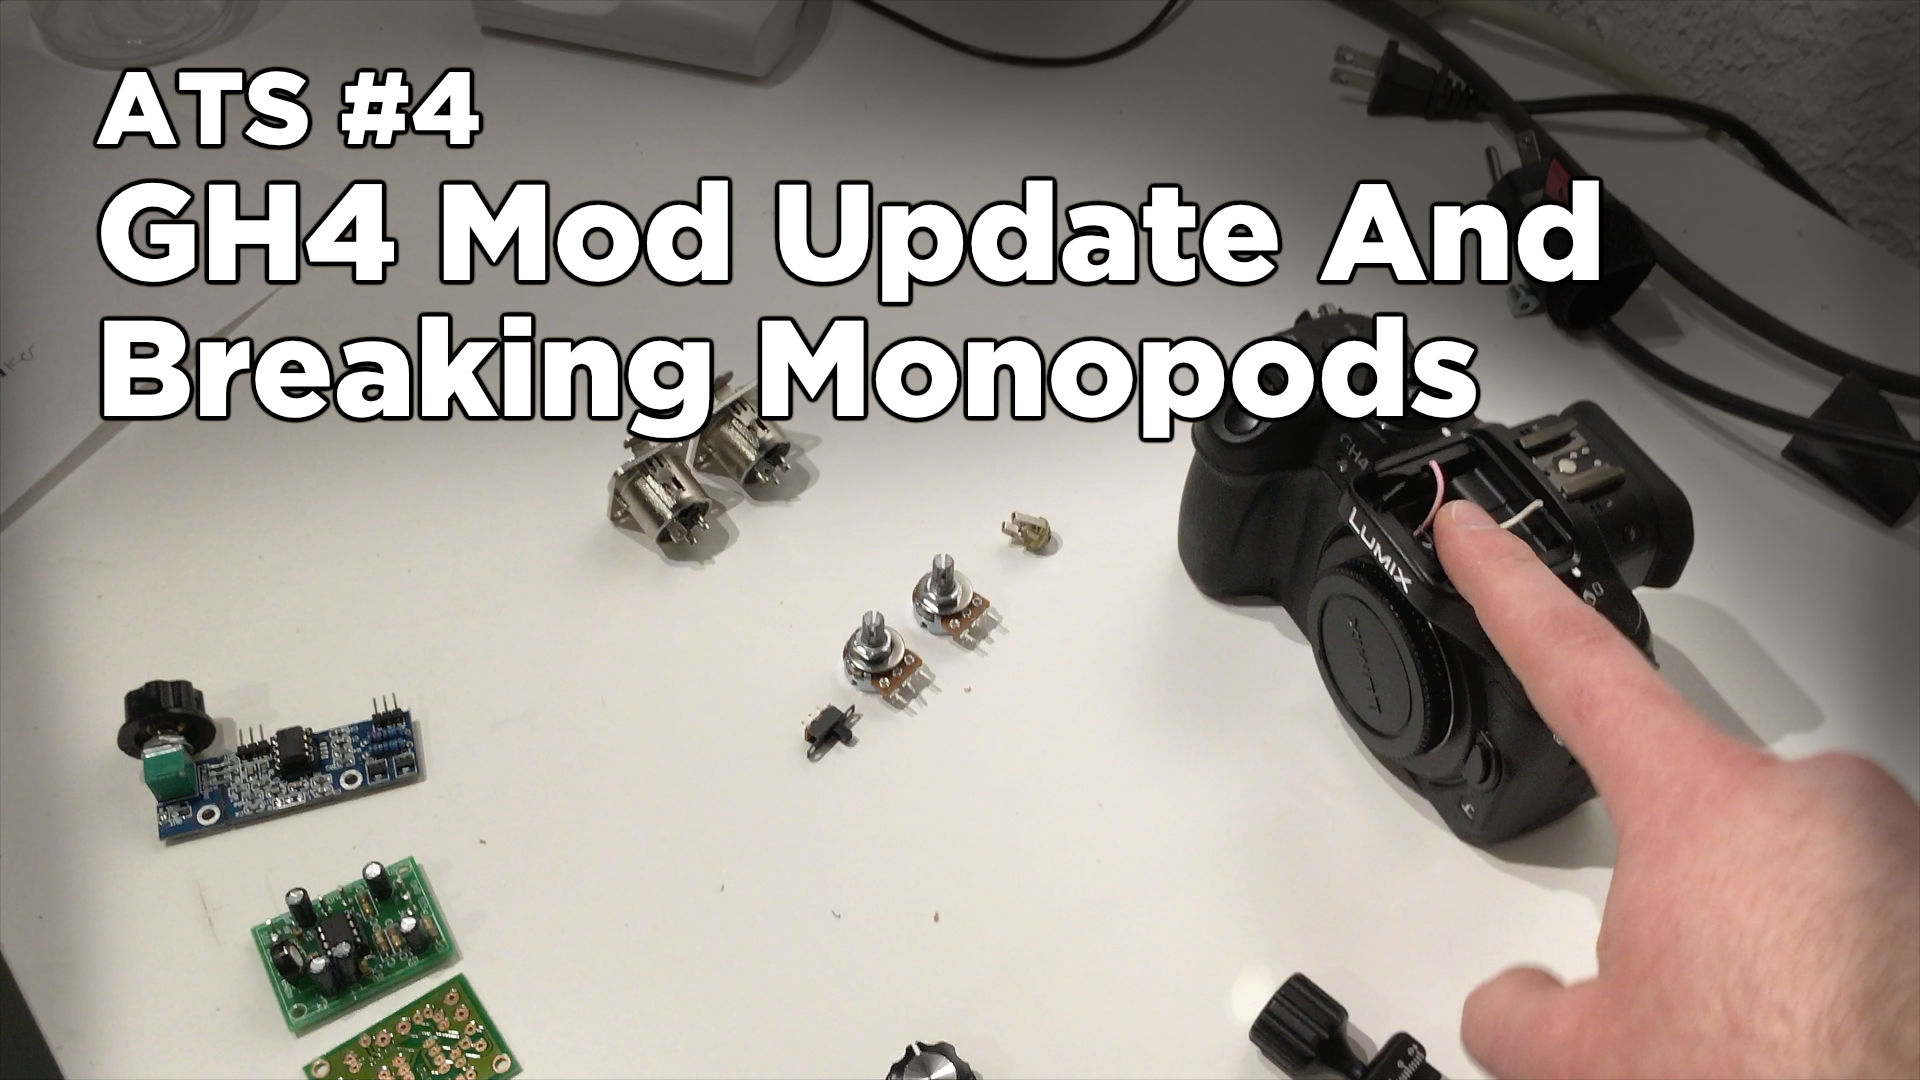 Around The Studio 4 Gh4 Mod Update And Breaking Monopods Components Used In Basic Electronics Hacks Mods Circuitry